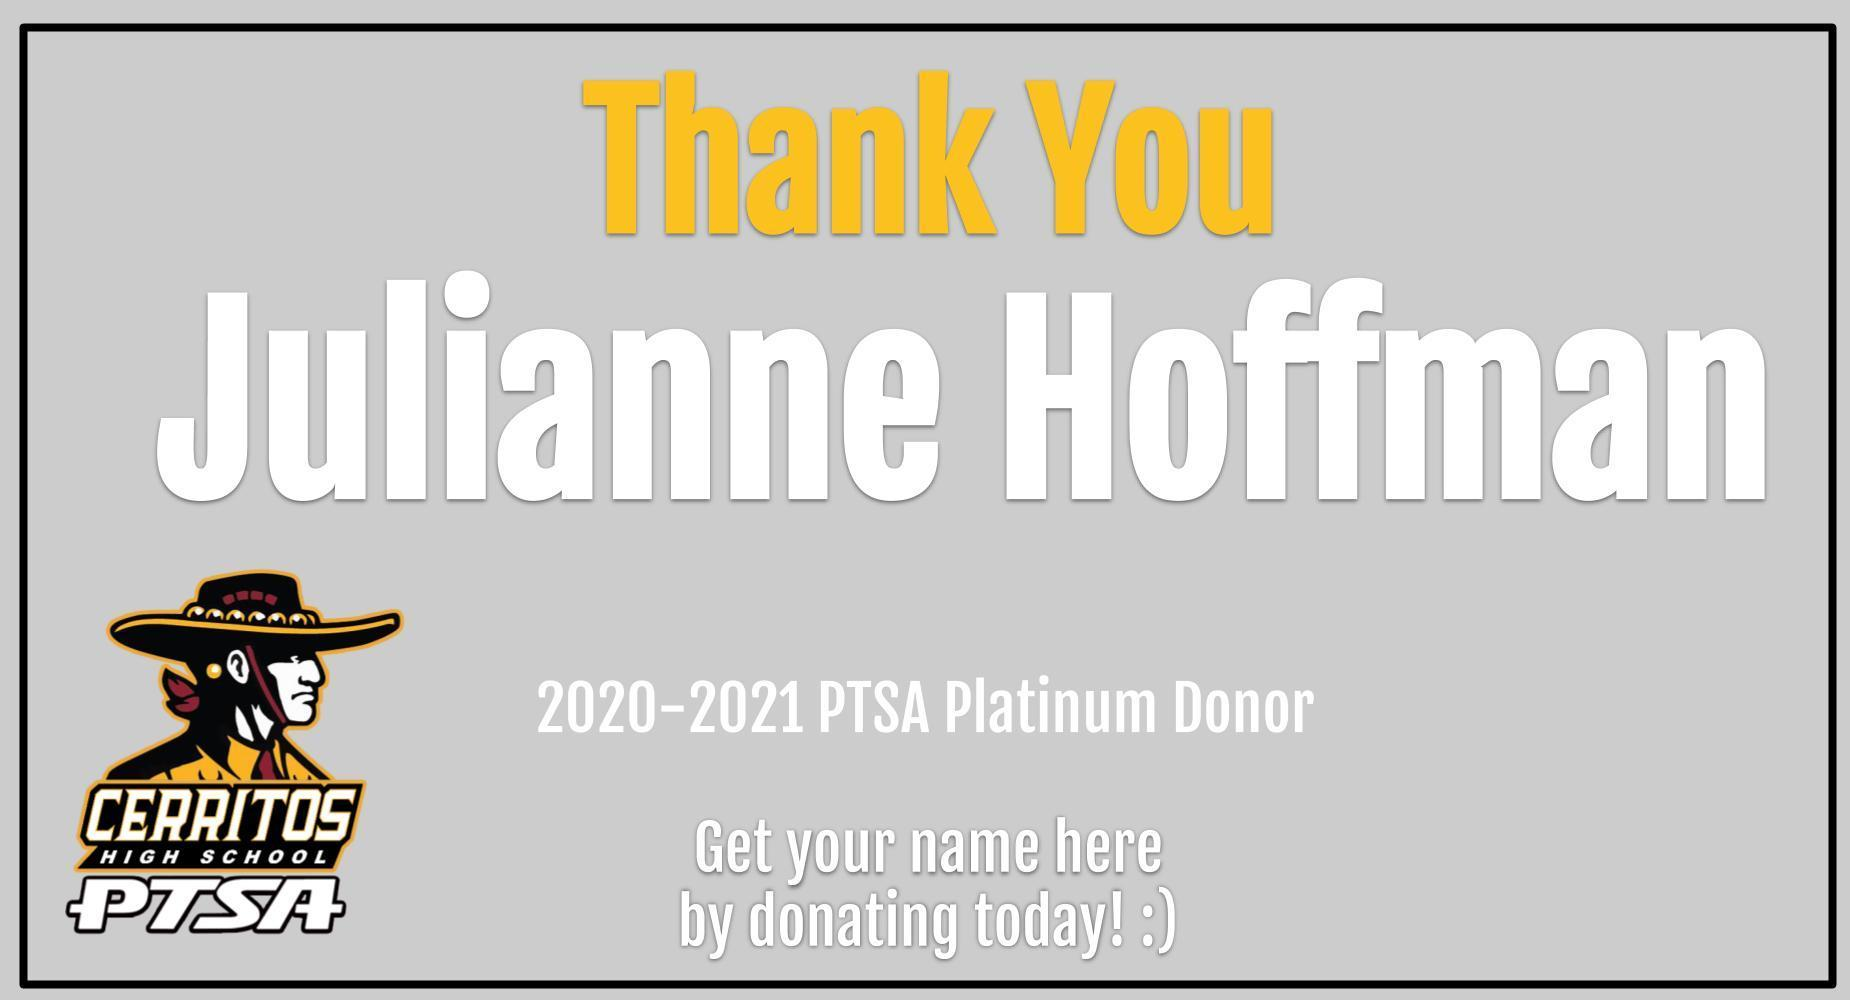 Thank you PTSA Donor!